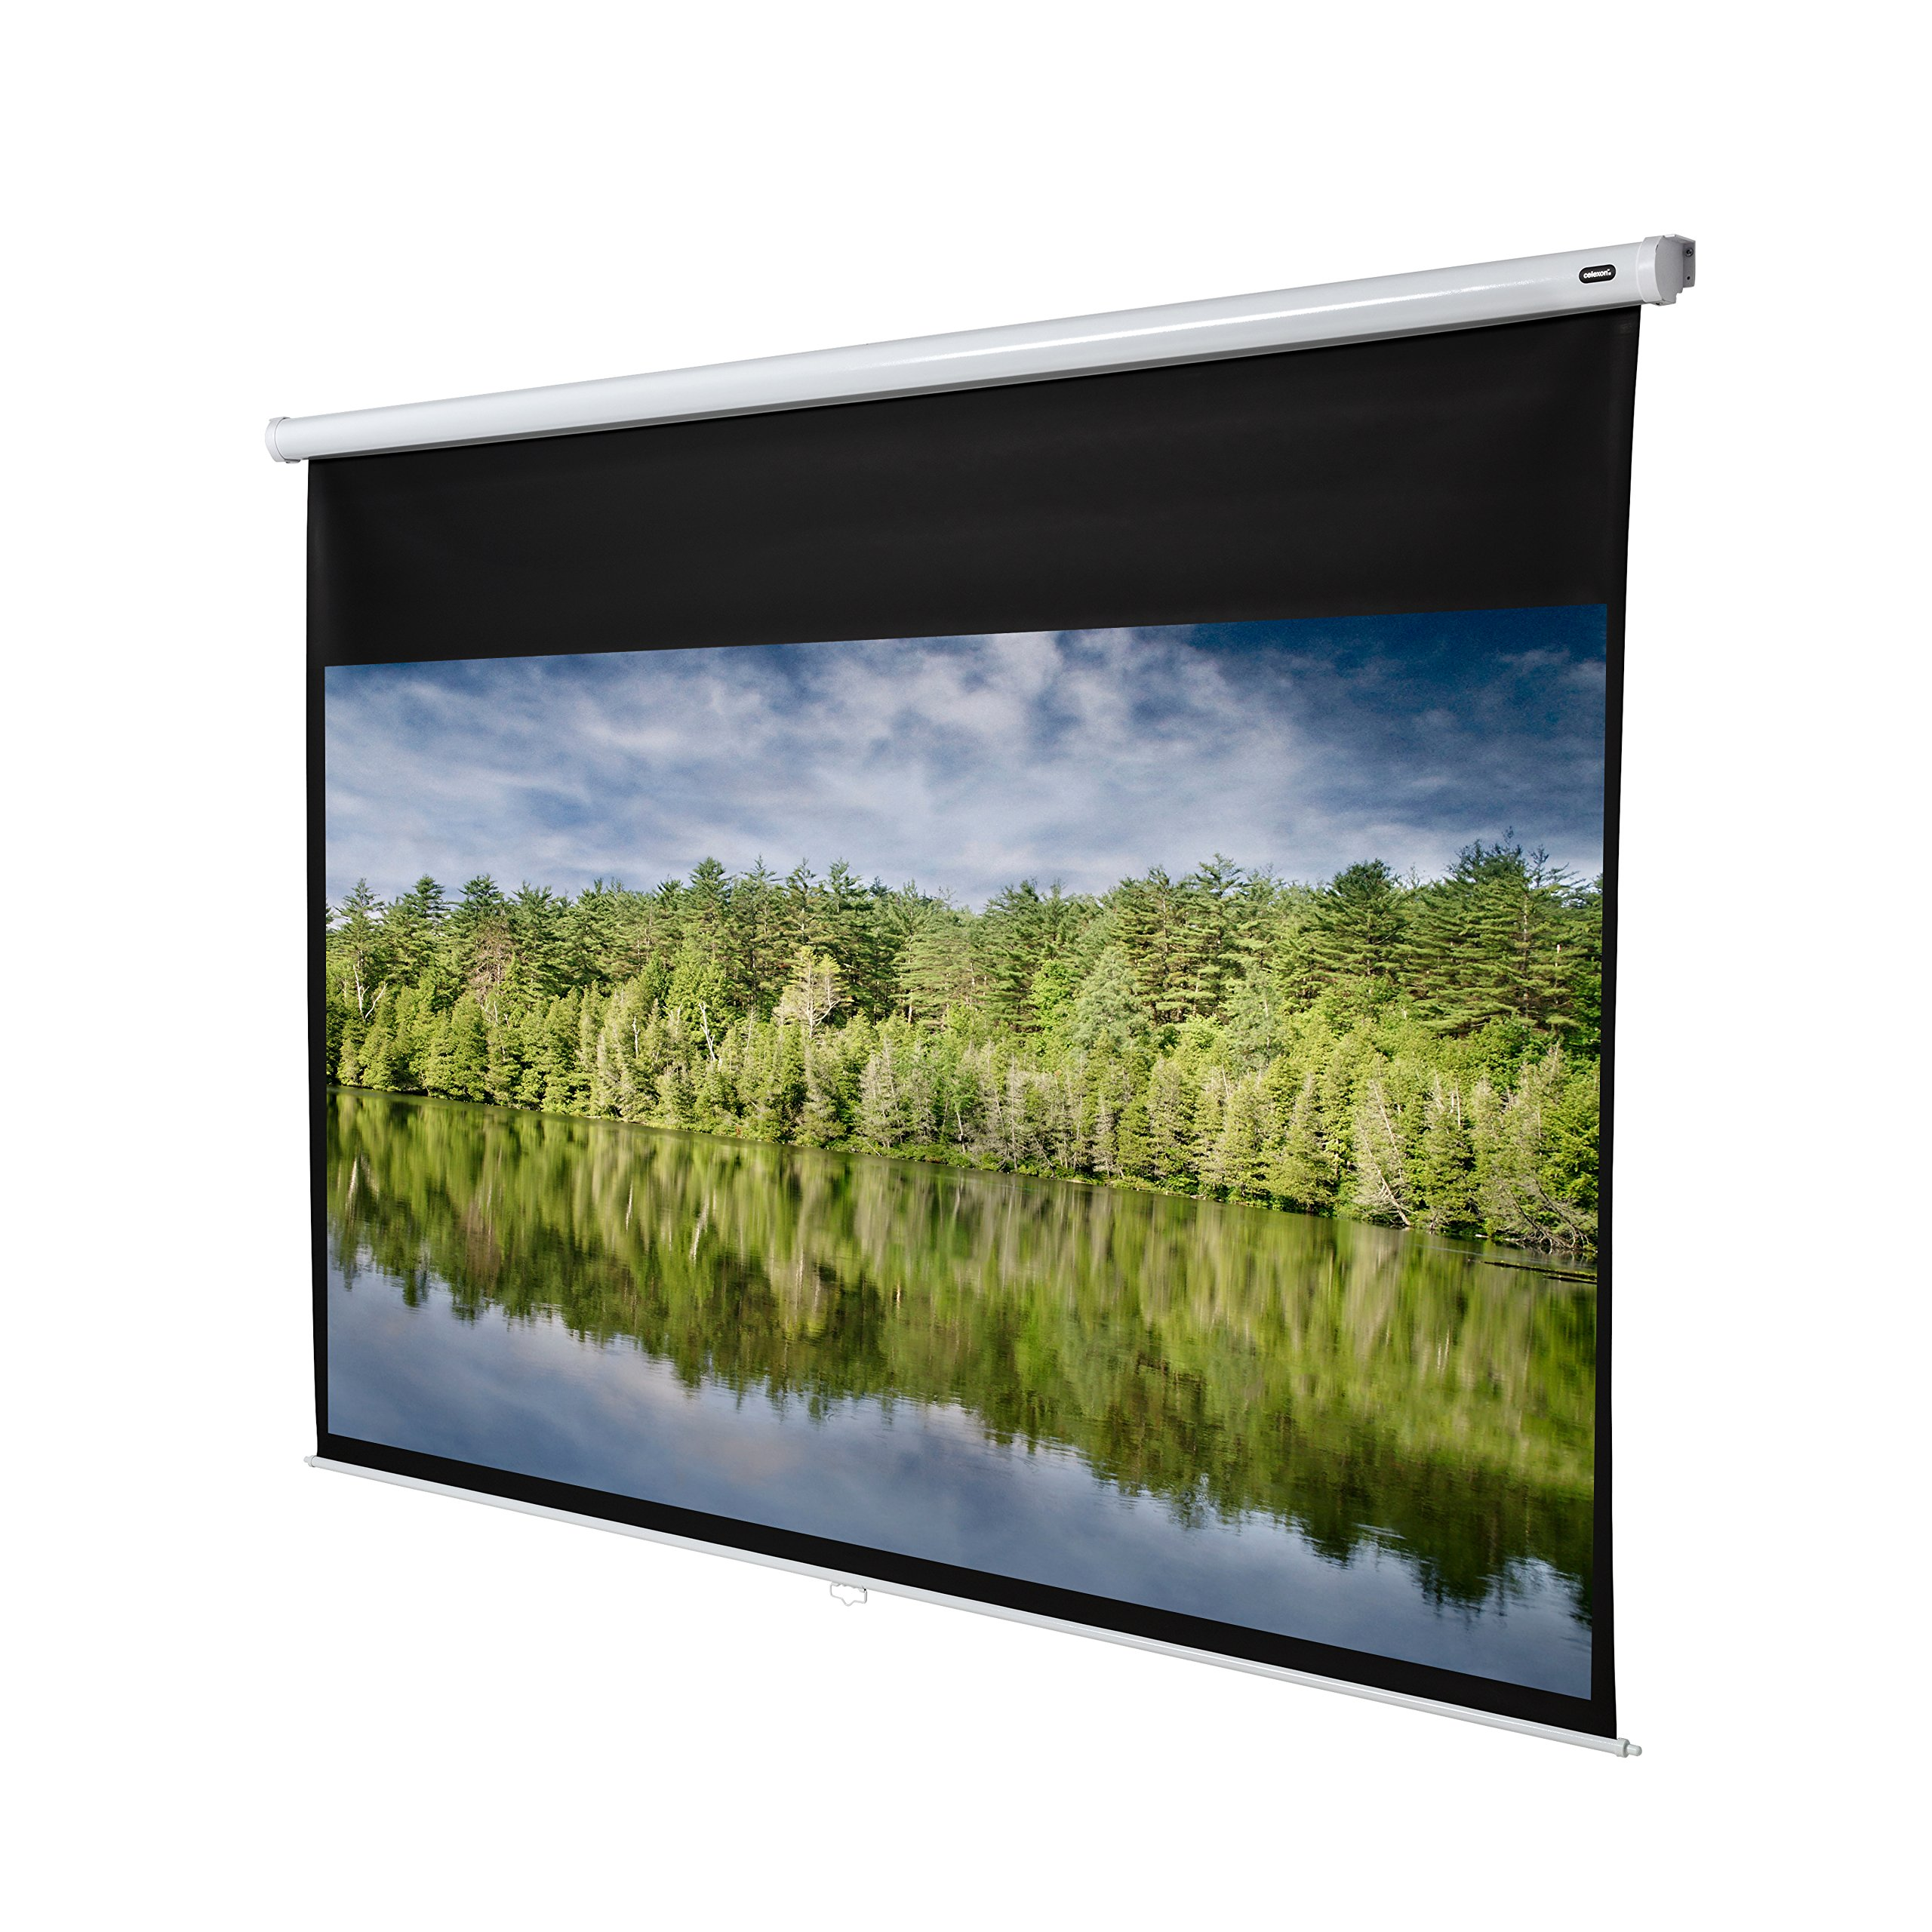 celexon 138'' Manual Economy 120 x 68 inches viewing area | 16:9 format | Manual Pull Down Projector Screen | Wall or ceiling mounting | Gain factor of 1.0 for home cinema & business environments